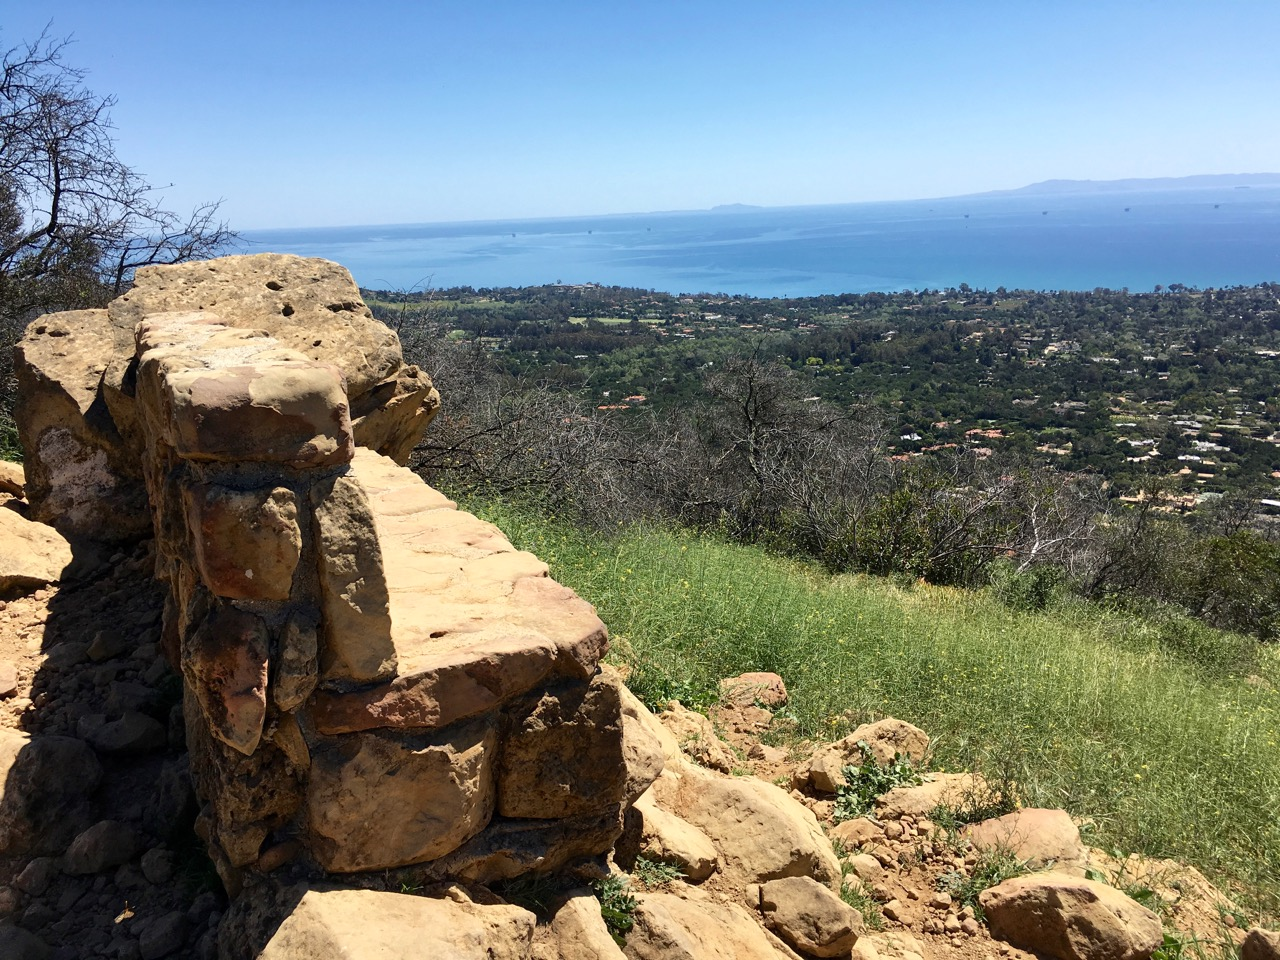 McMenemy Trail – Santa Barbara, California